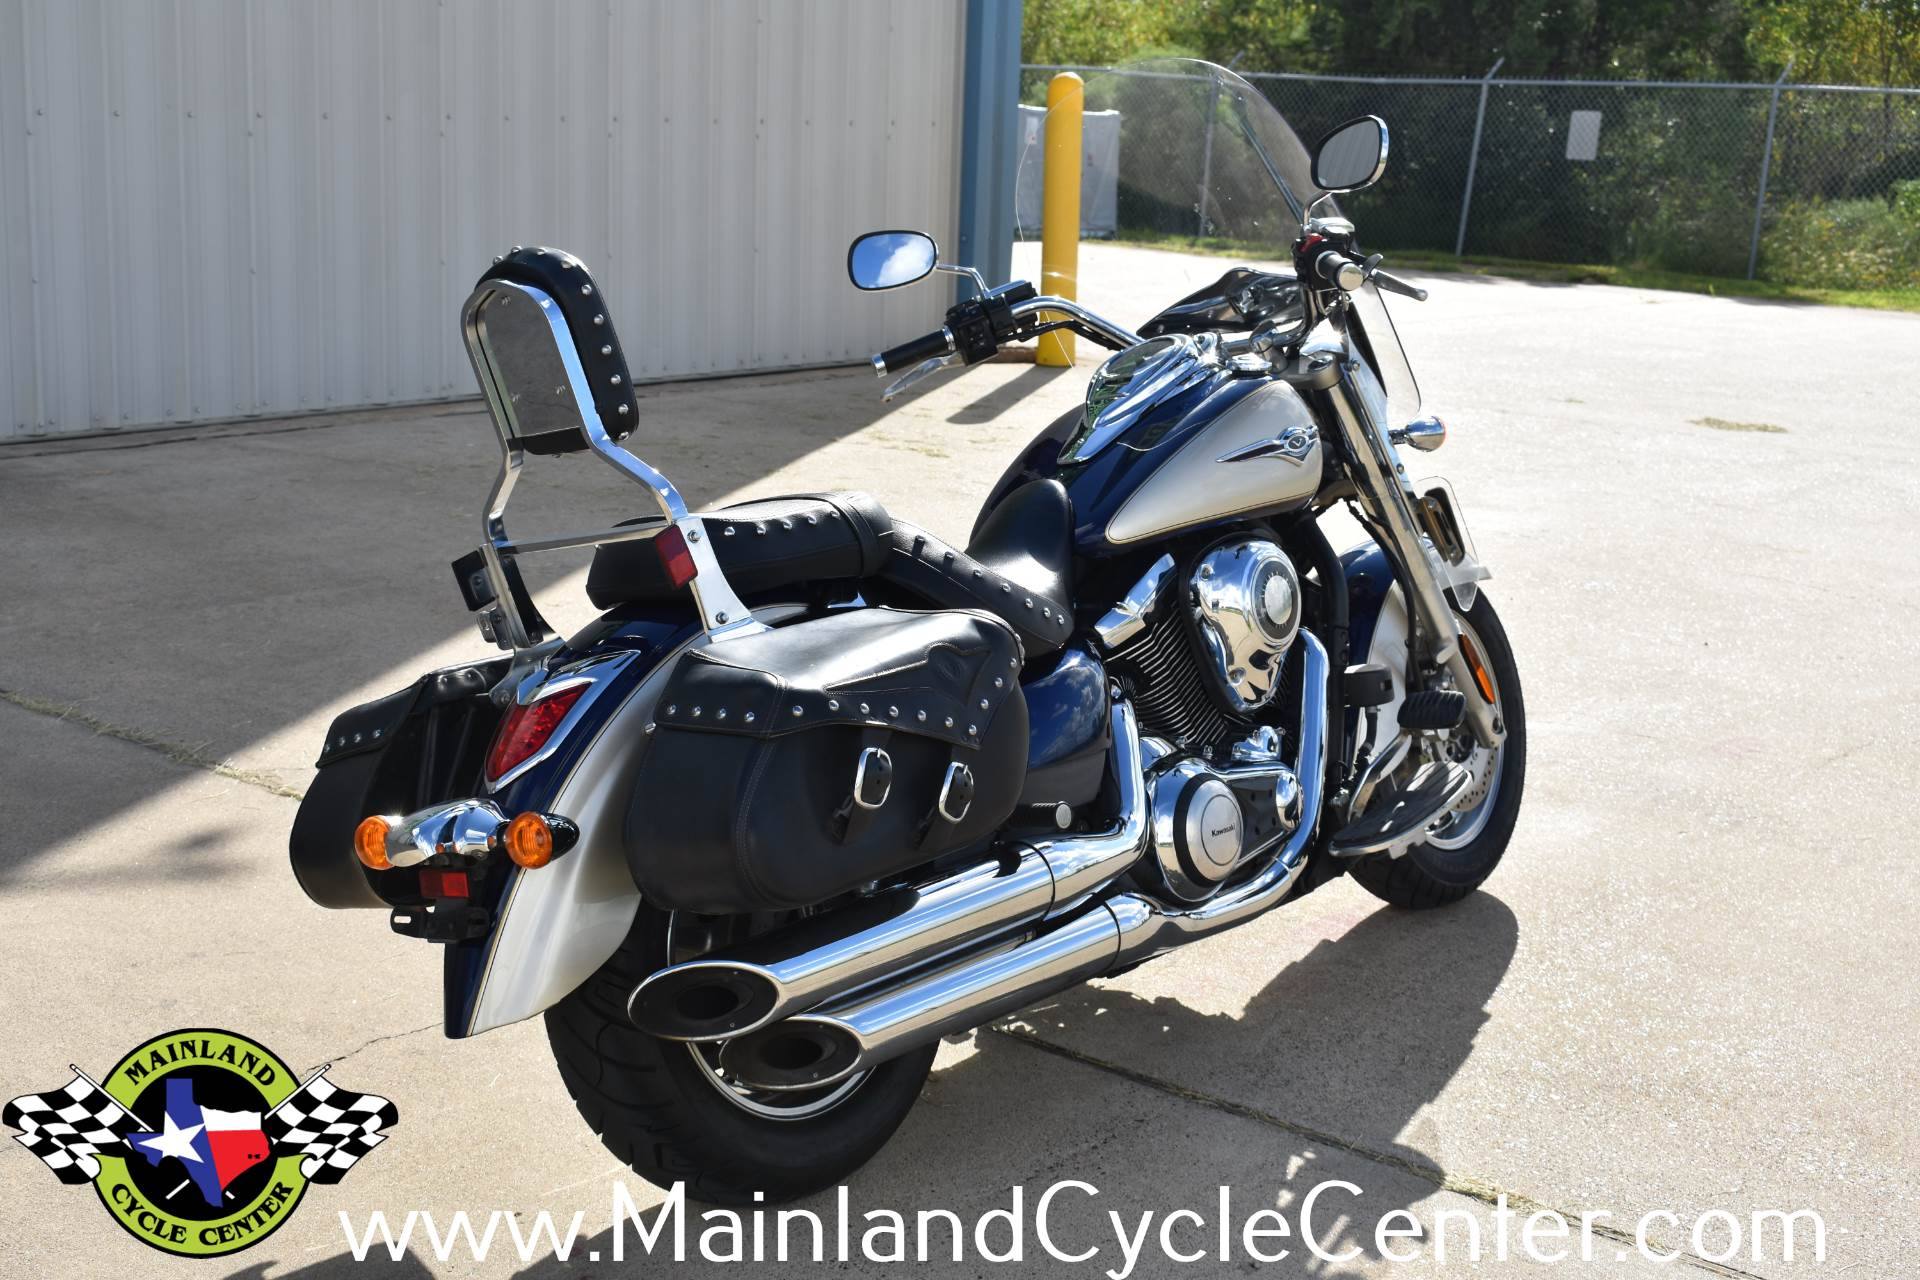 2009 Kawasaki Vulcan 1700 Classic LT in La Marque, Texas - Photo 3